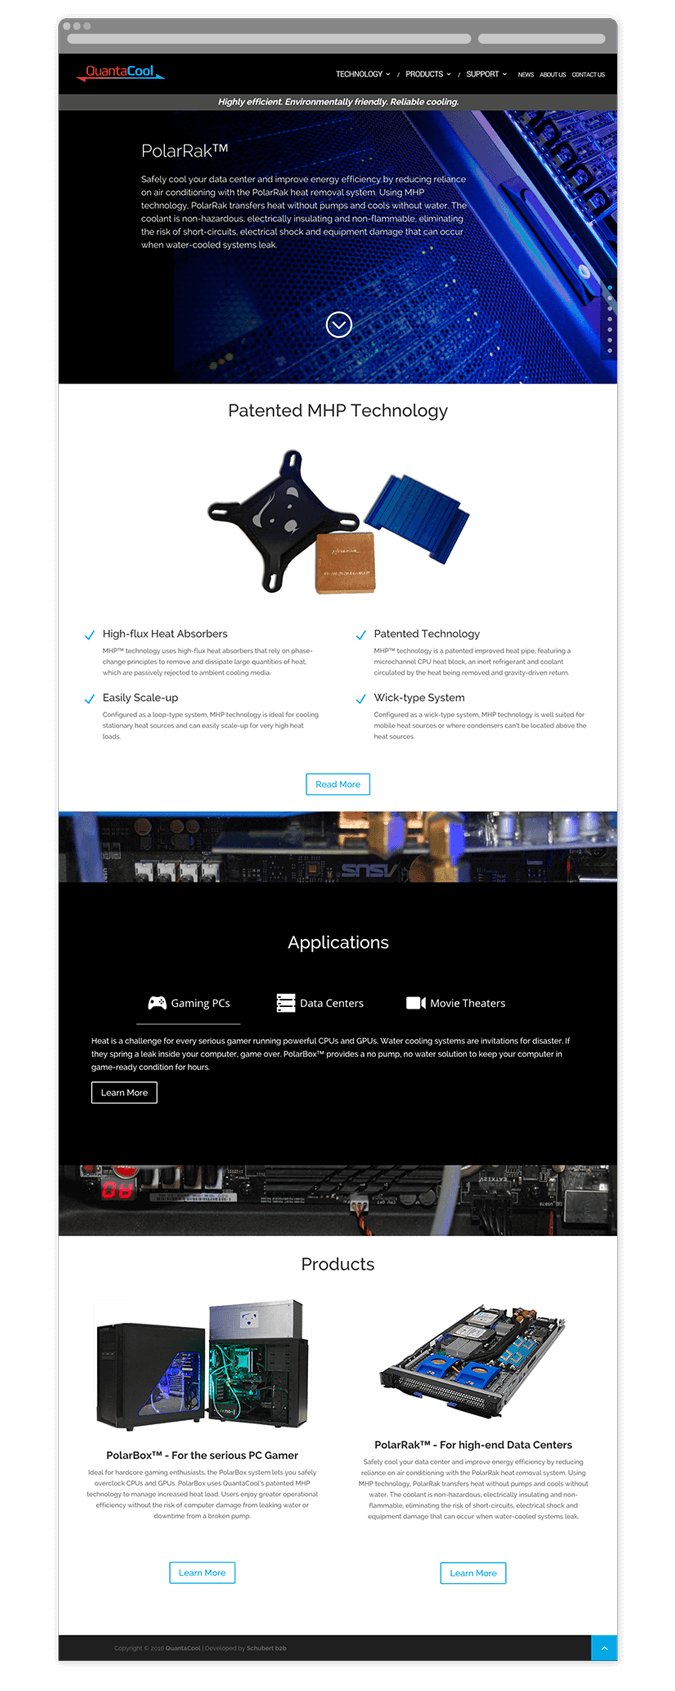 QuantaCool Web Homepage Design